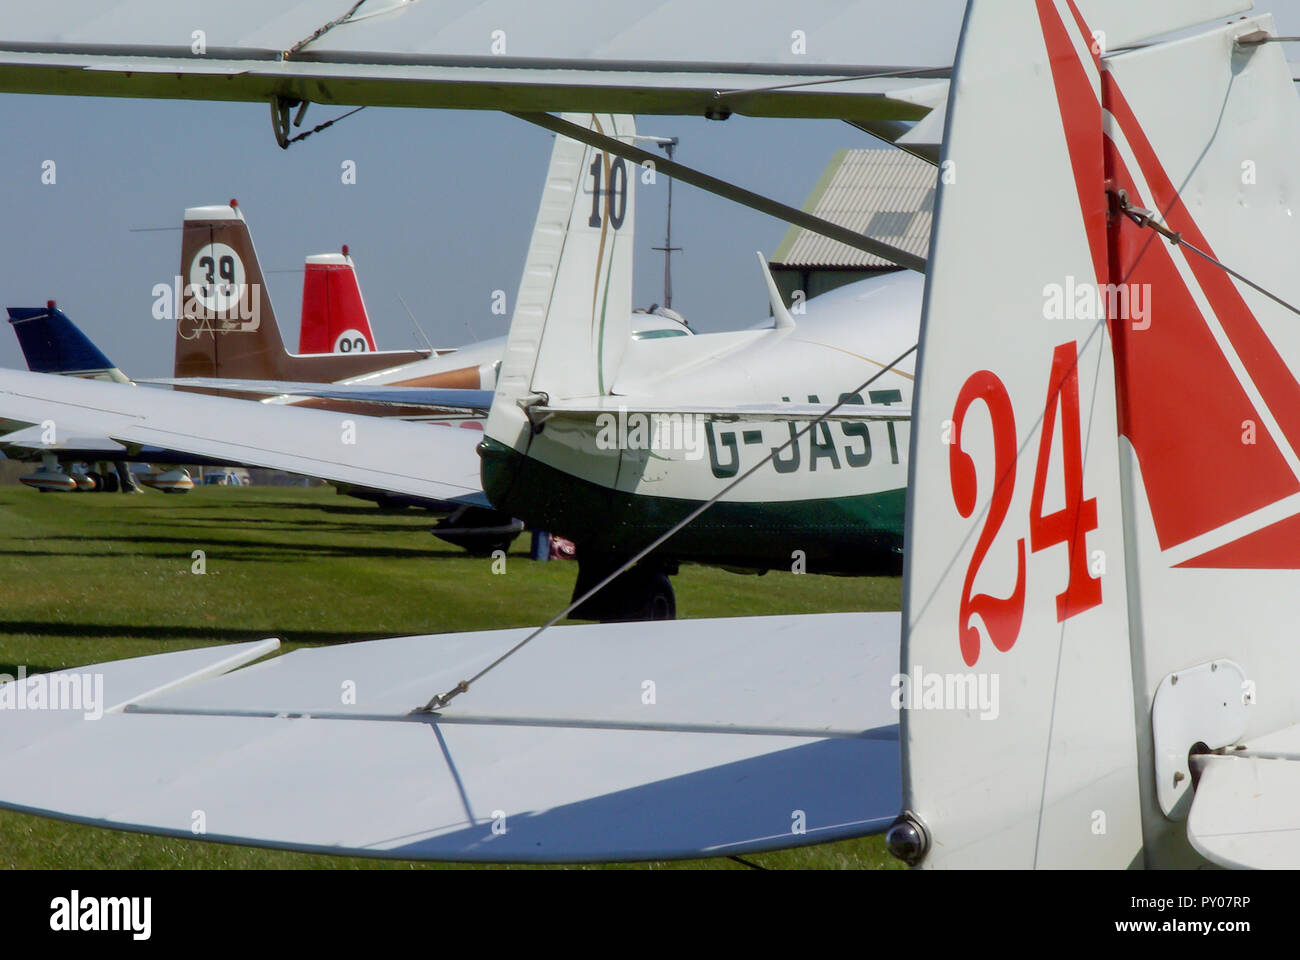 Light aircraft with race numbers at Royal Aero Club RAeC Air Race Series at Great Oakley airfield, Essex, UK. Private flying. Planes. Airplanes. Tails - Stock Image